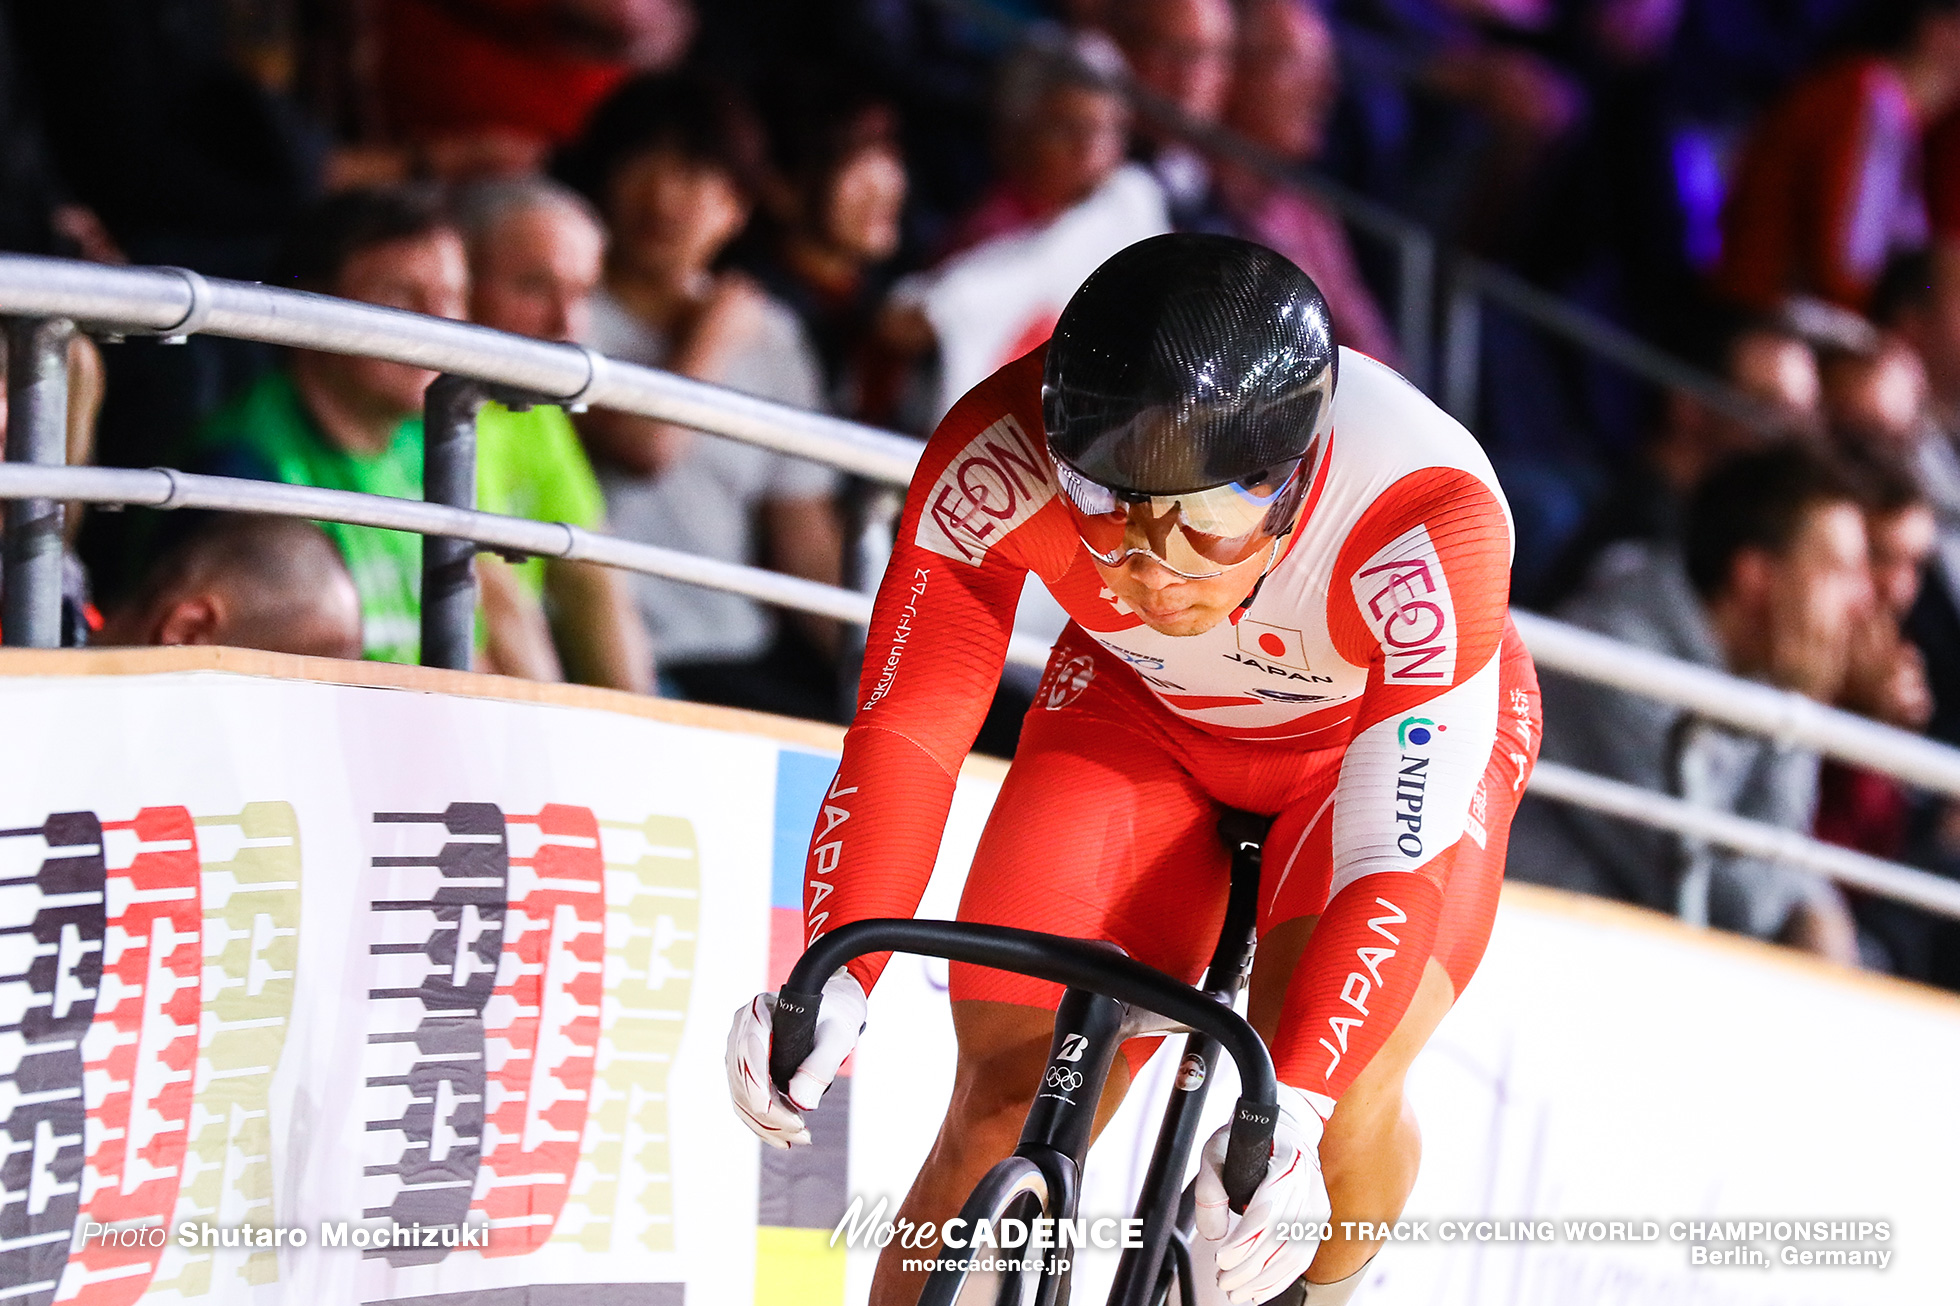 Qualifying / Men's Sprint / 2020 Track Cycling World Championships